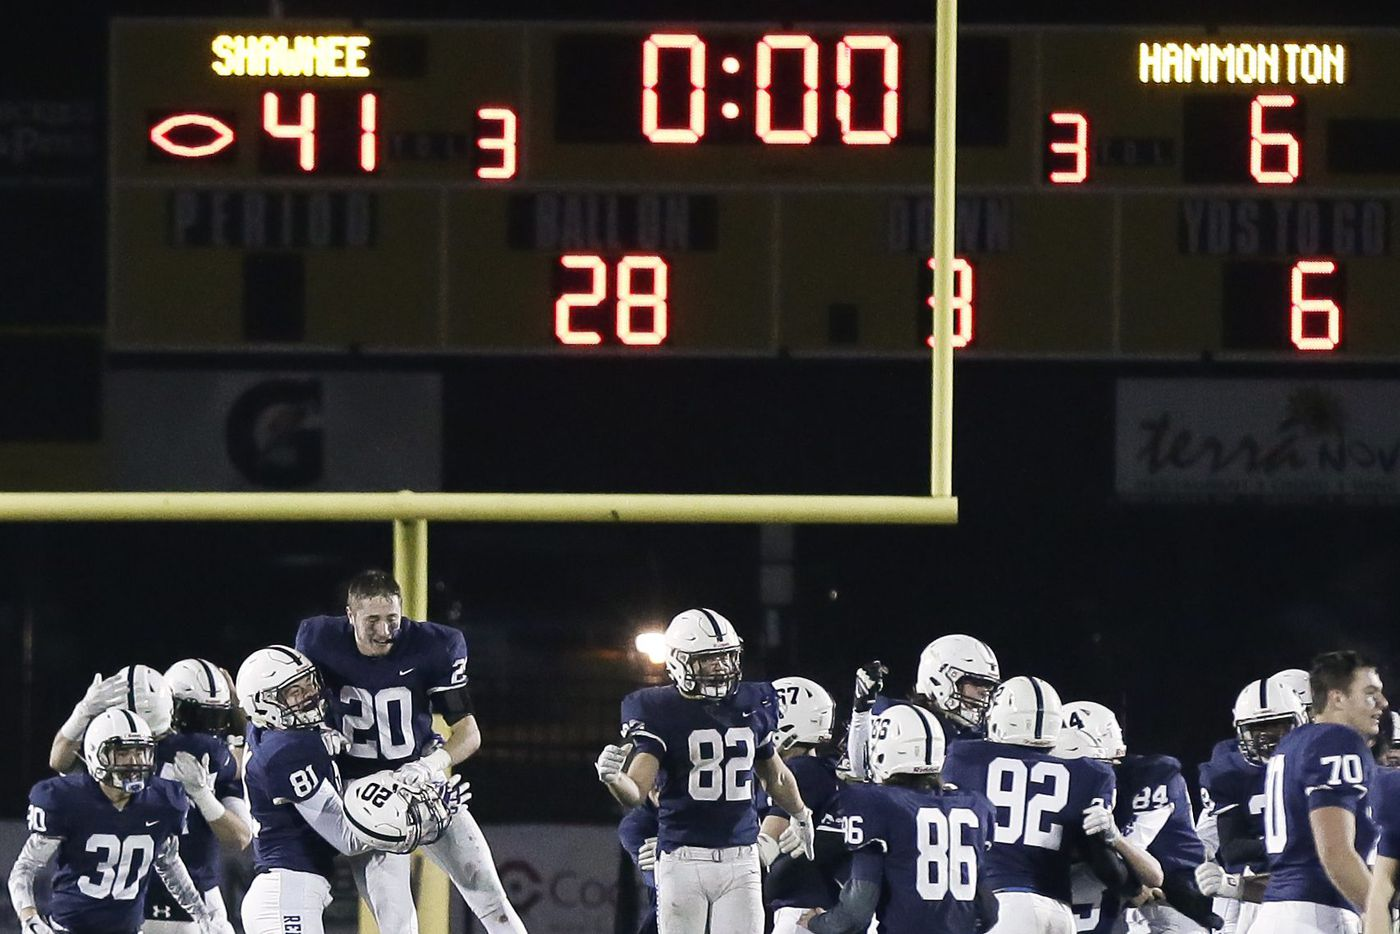 Shawnee vs. Cherokee highlights South Jersey games to watch